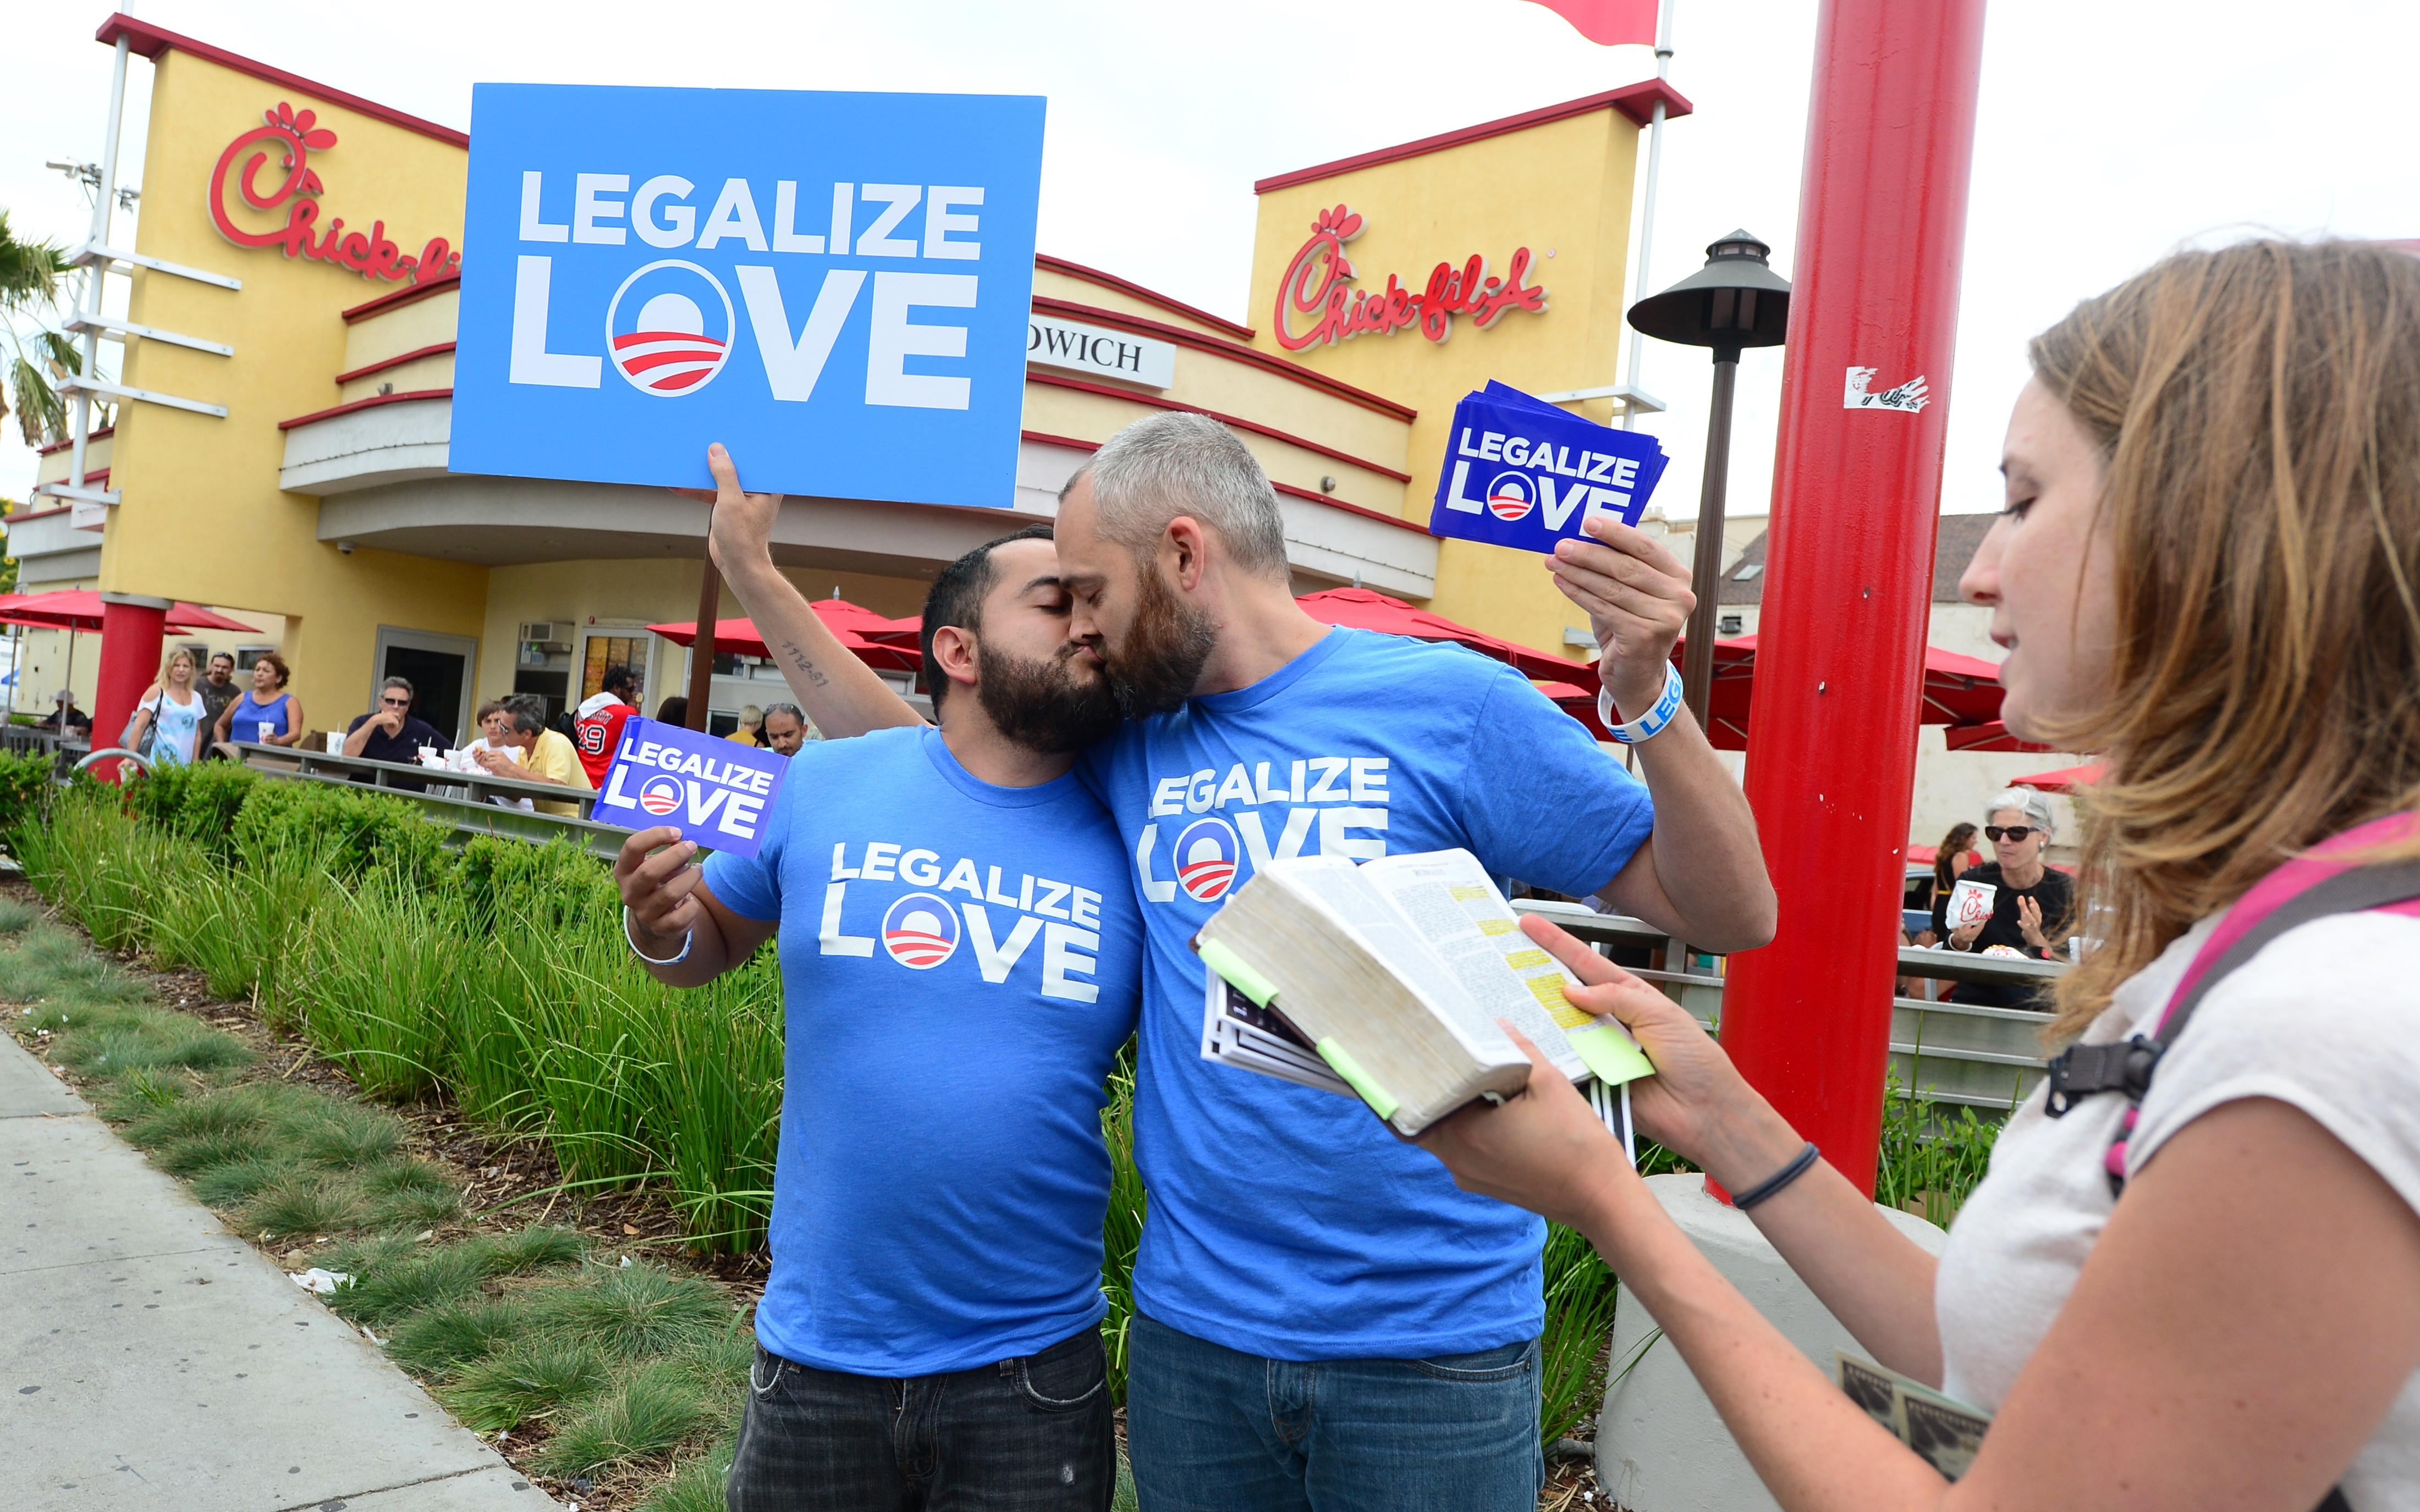 "Eduardo Cisneros (L) and Luke Montgomery (C) kiss in front of a Chick-fil-A fast food restaurant in Hollywood as Christian activist Alicia Daberkow (R) reads passages from the Bible on August 3, 2012 in Hollywood, California. Gays and lesbians puckered up in protest Friday, staging ""kiss-ins"" outside Chick-fil-A outlets across the United States over the fast food chain's opposition to same-sex marriage. (FREDERIC J. BROWN/AFP/GettyImages)"